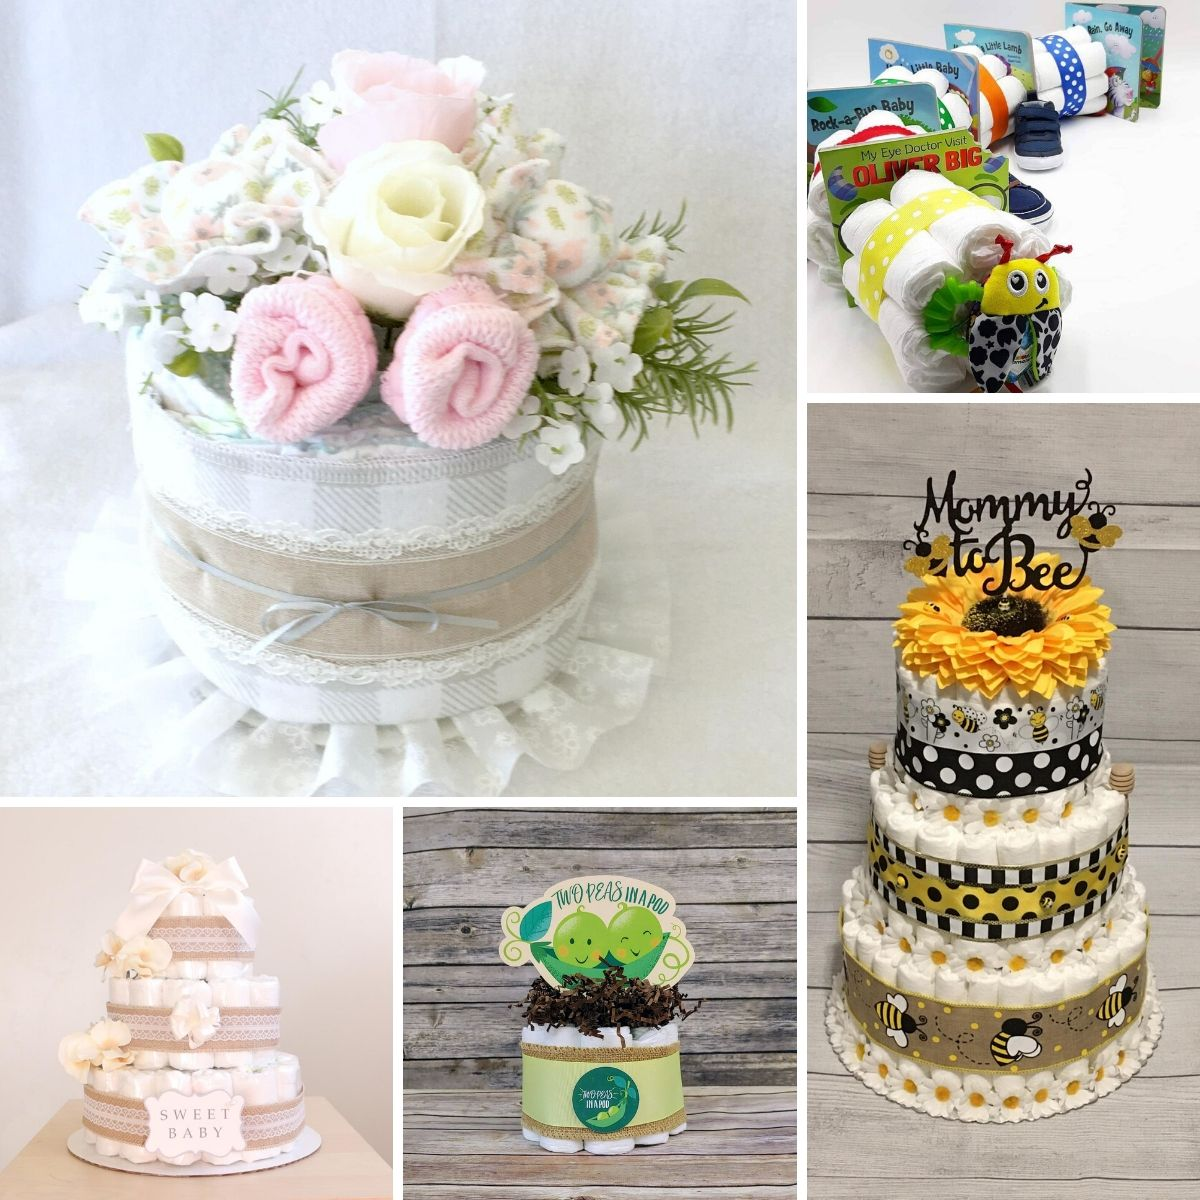 a collage of images showing diaers cakes for baby showers